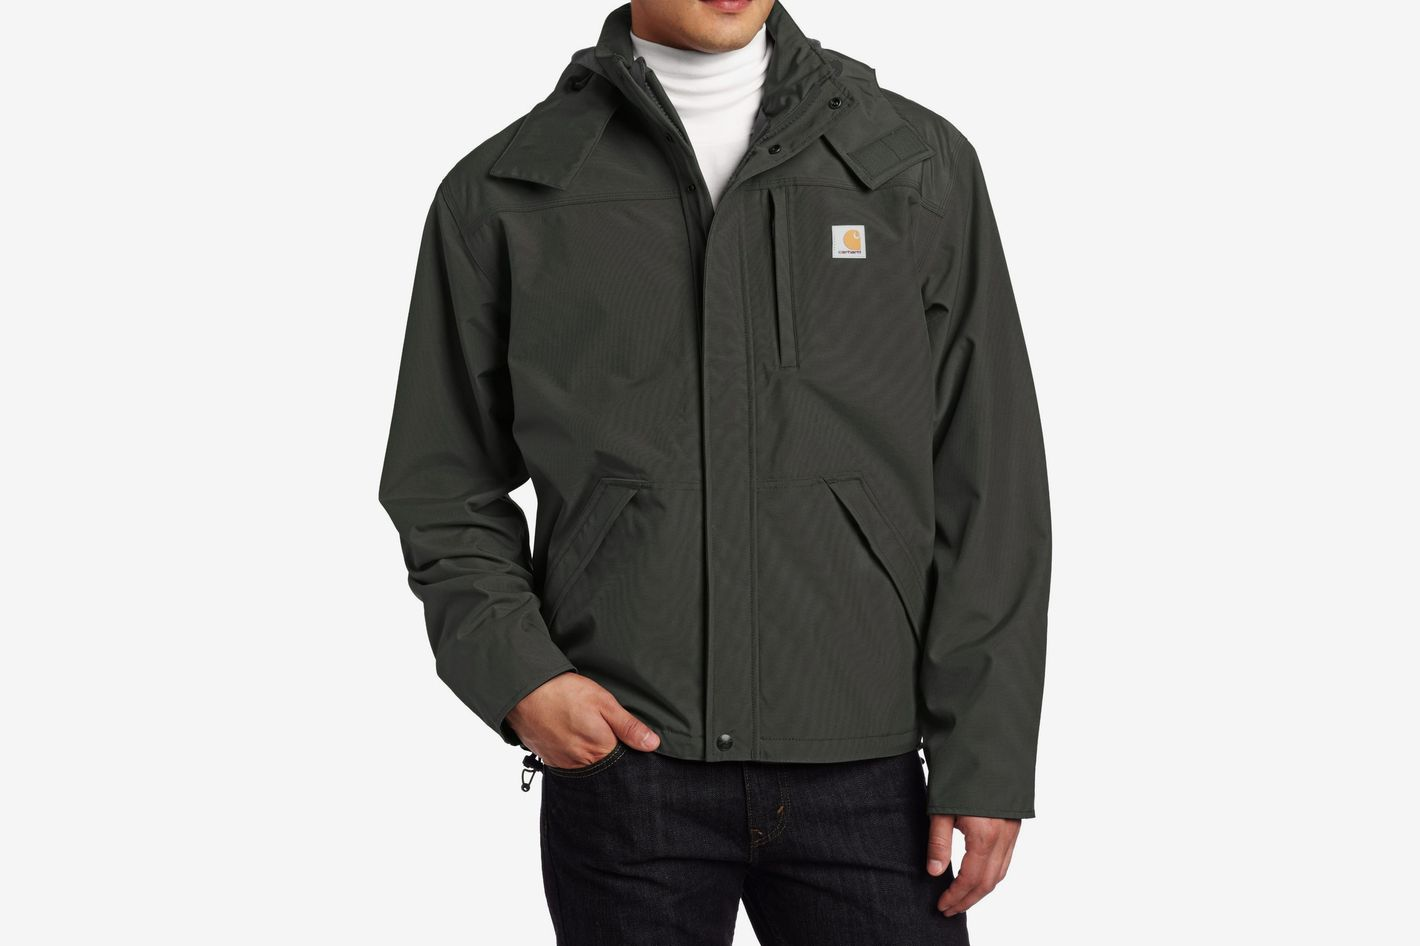 12 Best Rain Jackets and Rain Coats for Men 2019 01c4b74ef82b